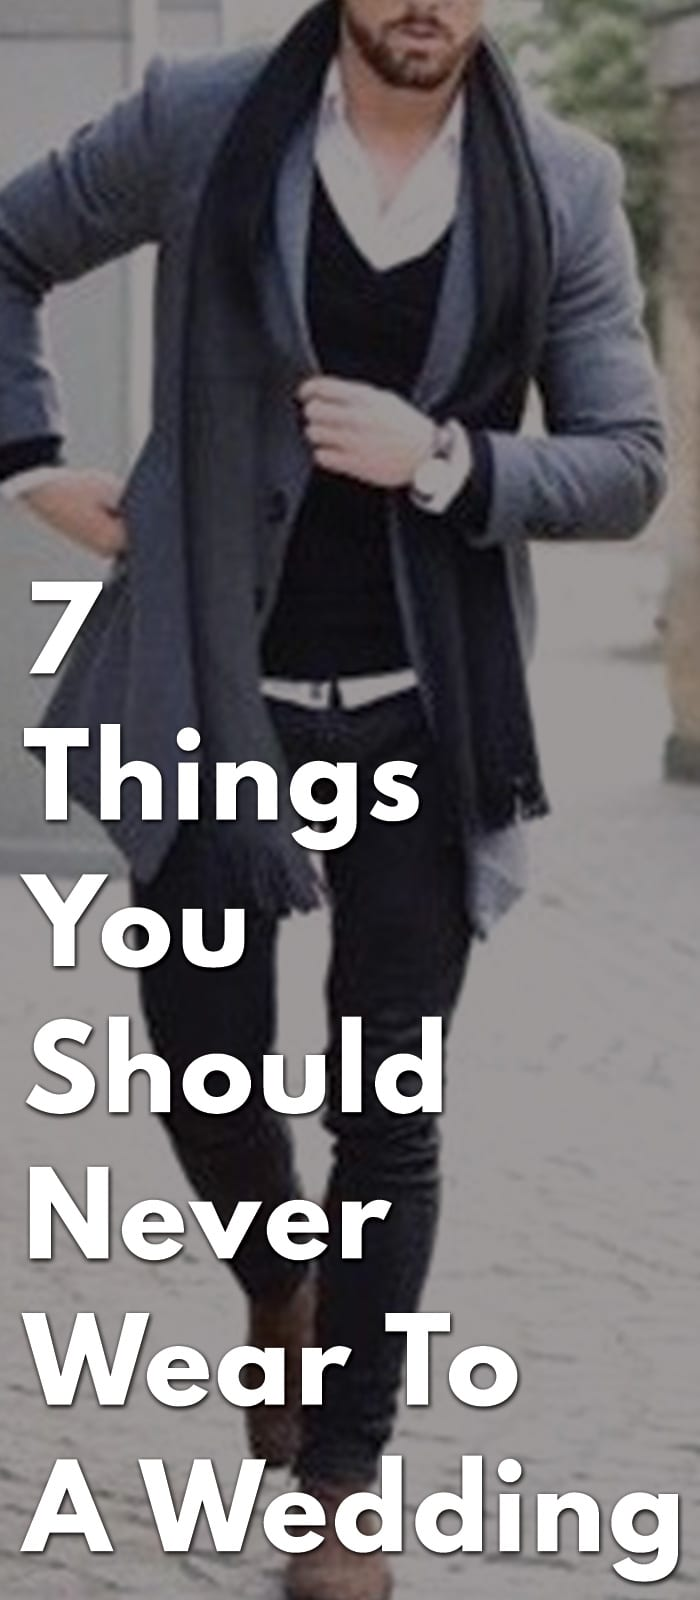 7-Things-You-Should-Never-Wear-To-A-Wedding